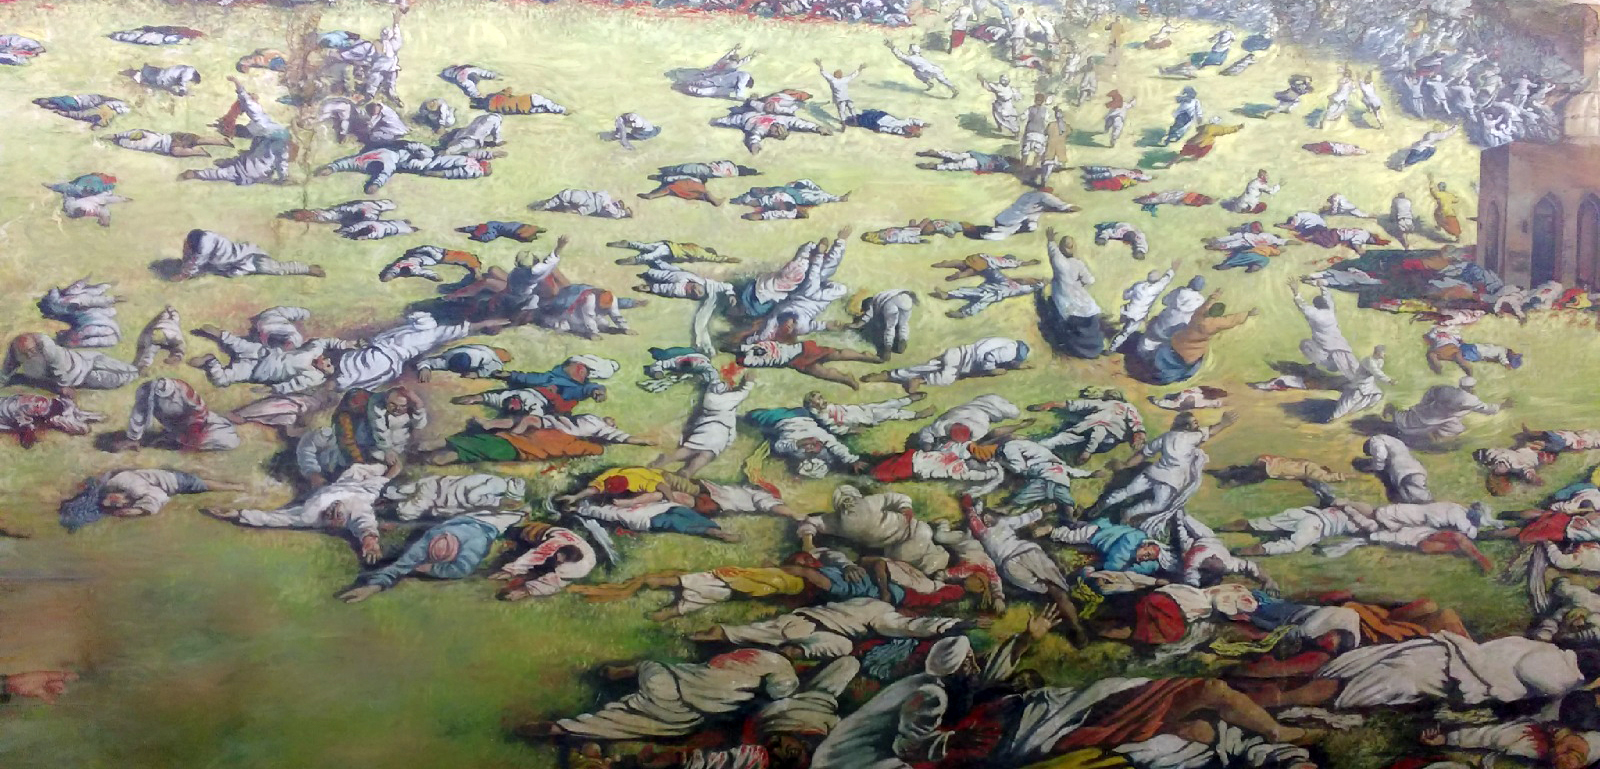 'Peppering away at niggers', the phrase often used in British memoirs, defines the colonial experience from Jallianwala Bagh in India to the Hola massacre in Kenya. Photo credit: Wikimedia Commons